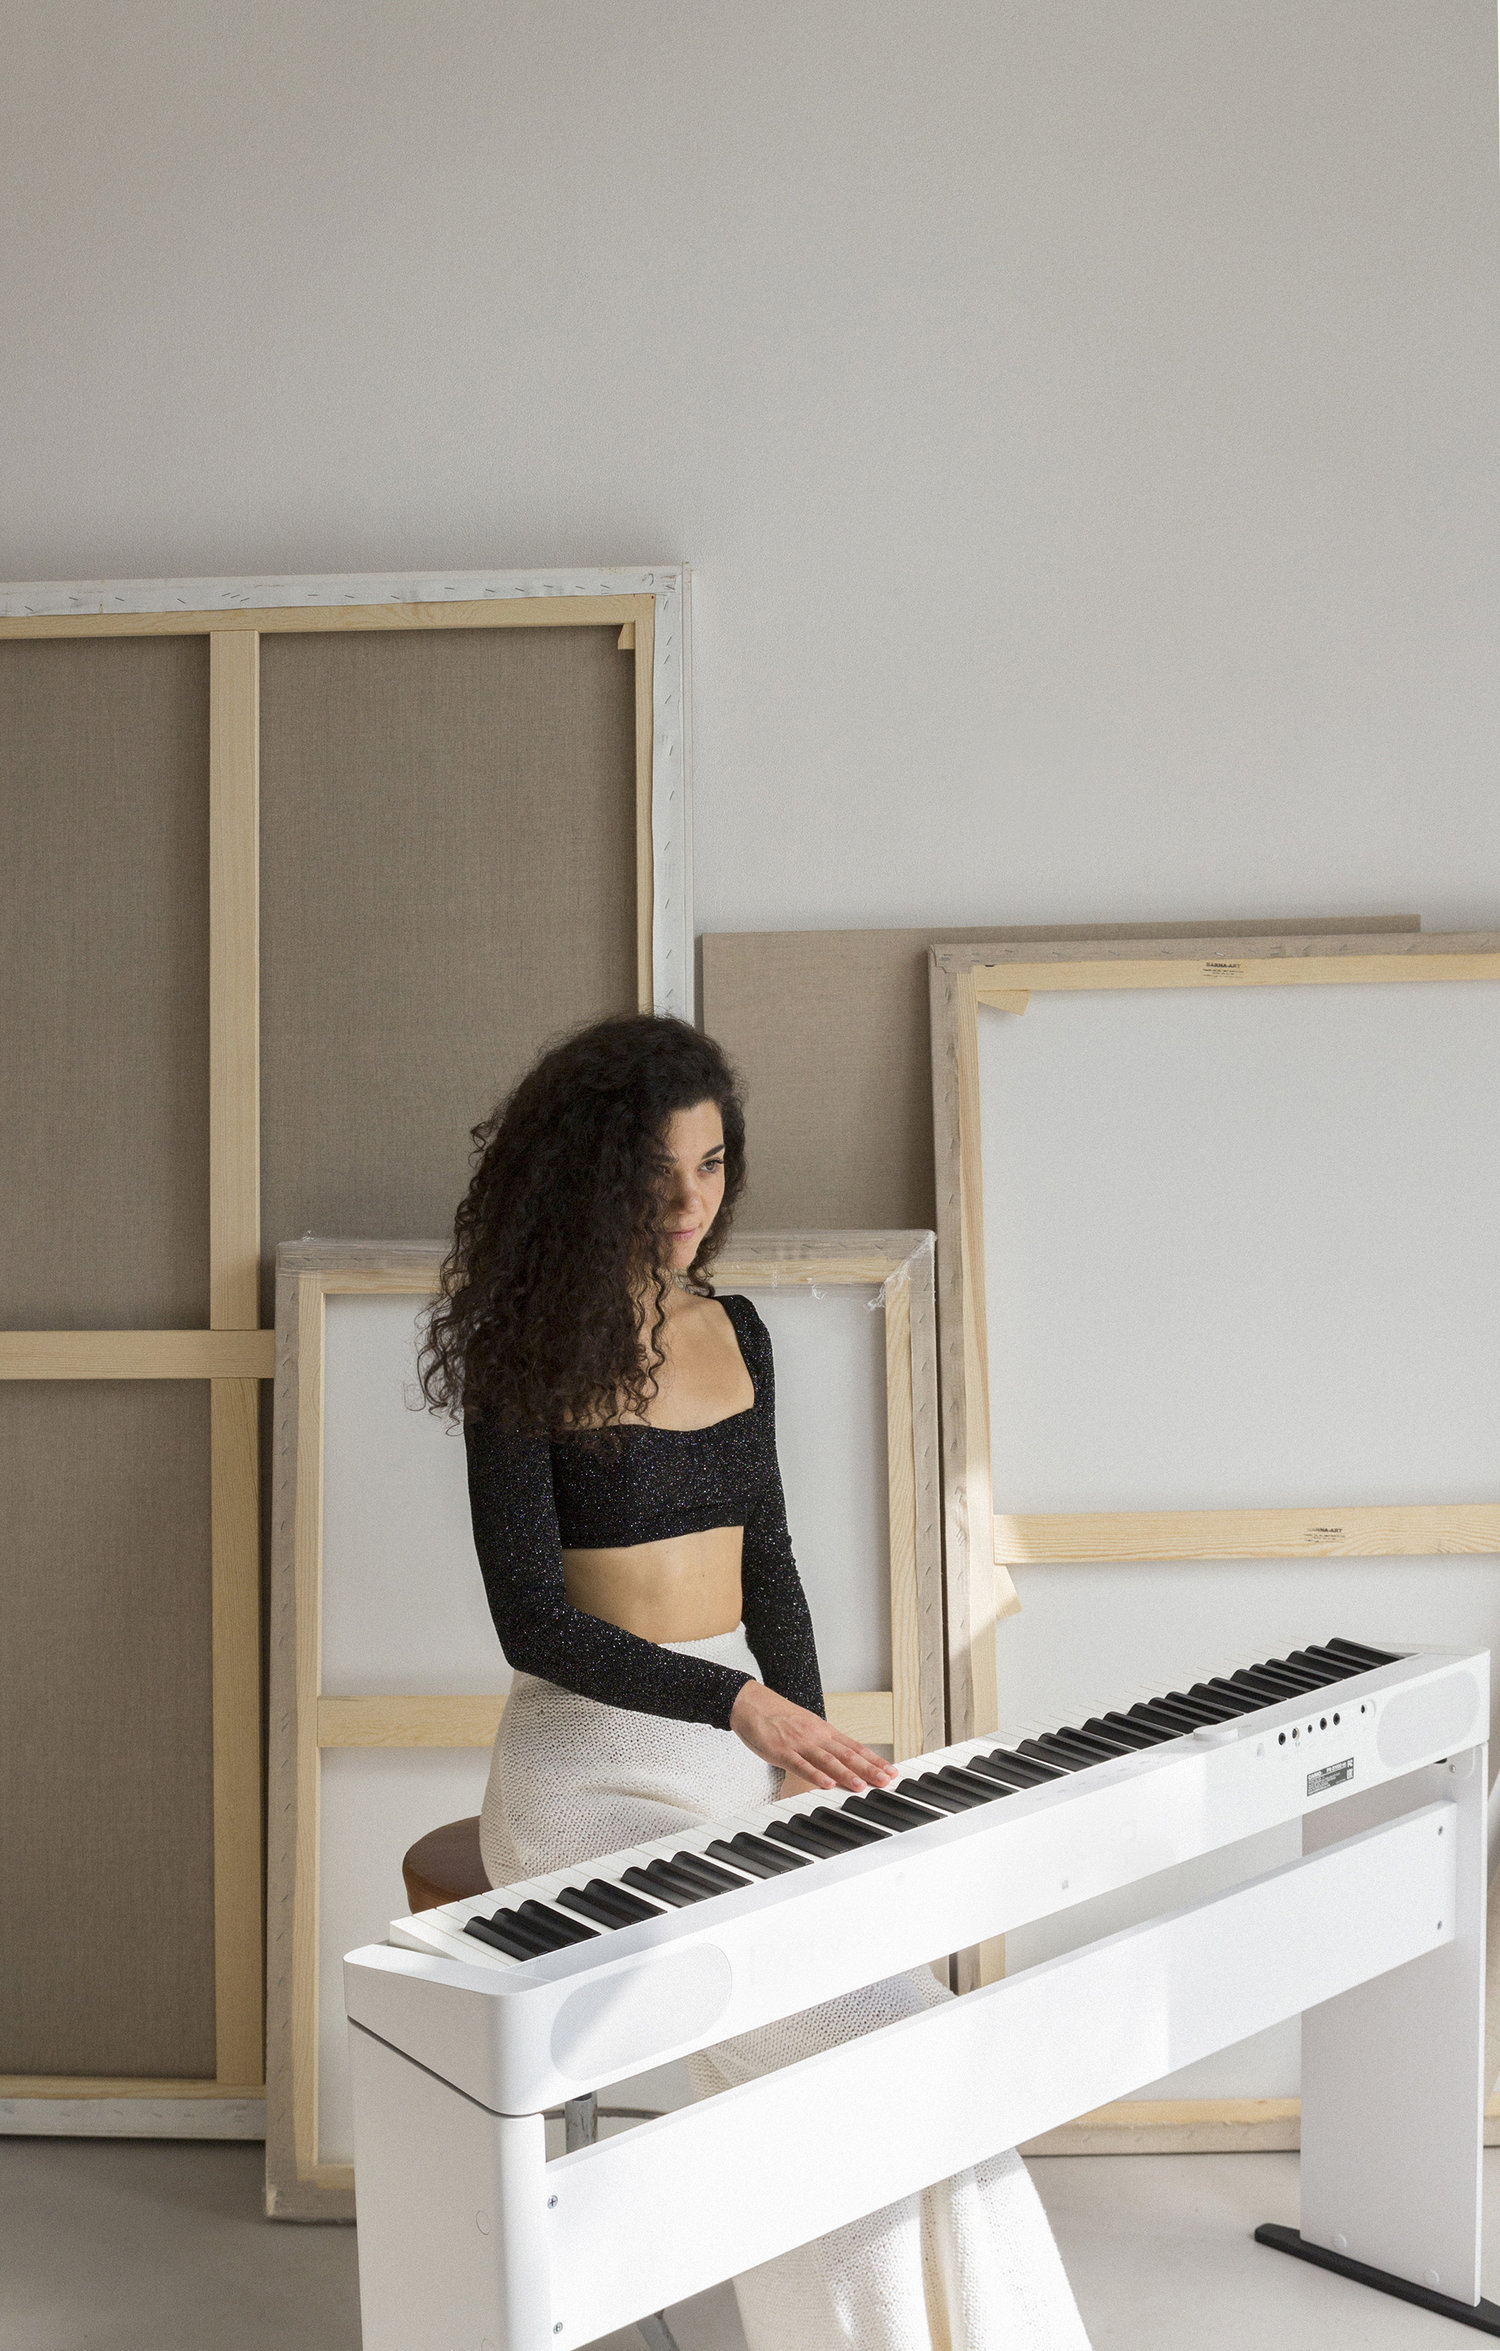 Marta Cascales Alimbau - Pianist & ComposerBarcelona — InternationalA professional pianist and composer from Barcelona, focused on creating a repertoire with the piano as a main instrument and with a strong interest in composing music for Dance, Film and Art Installations.